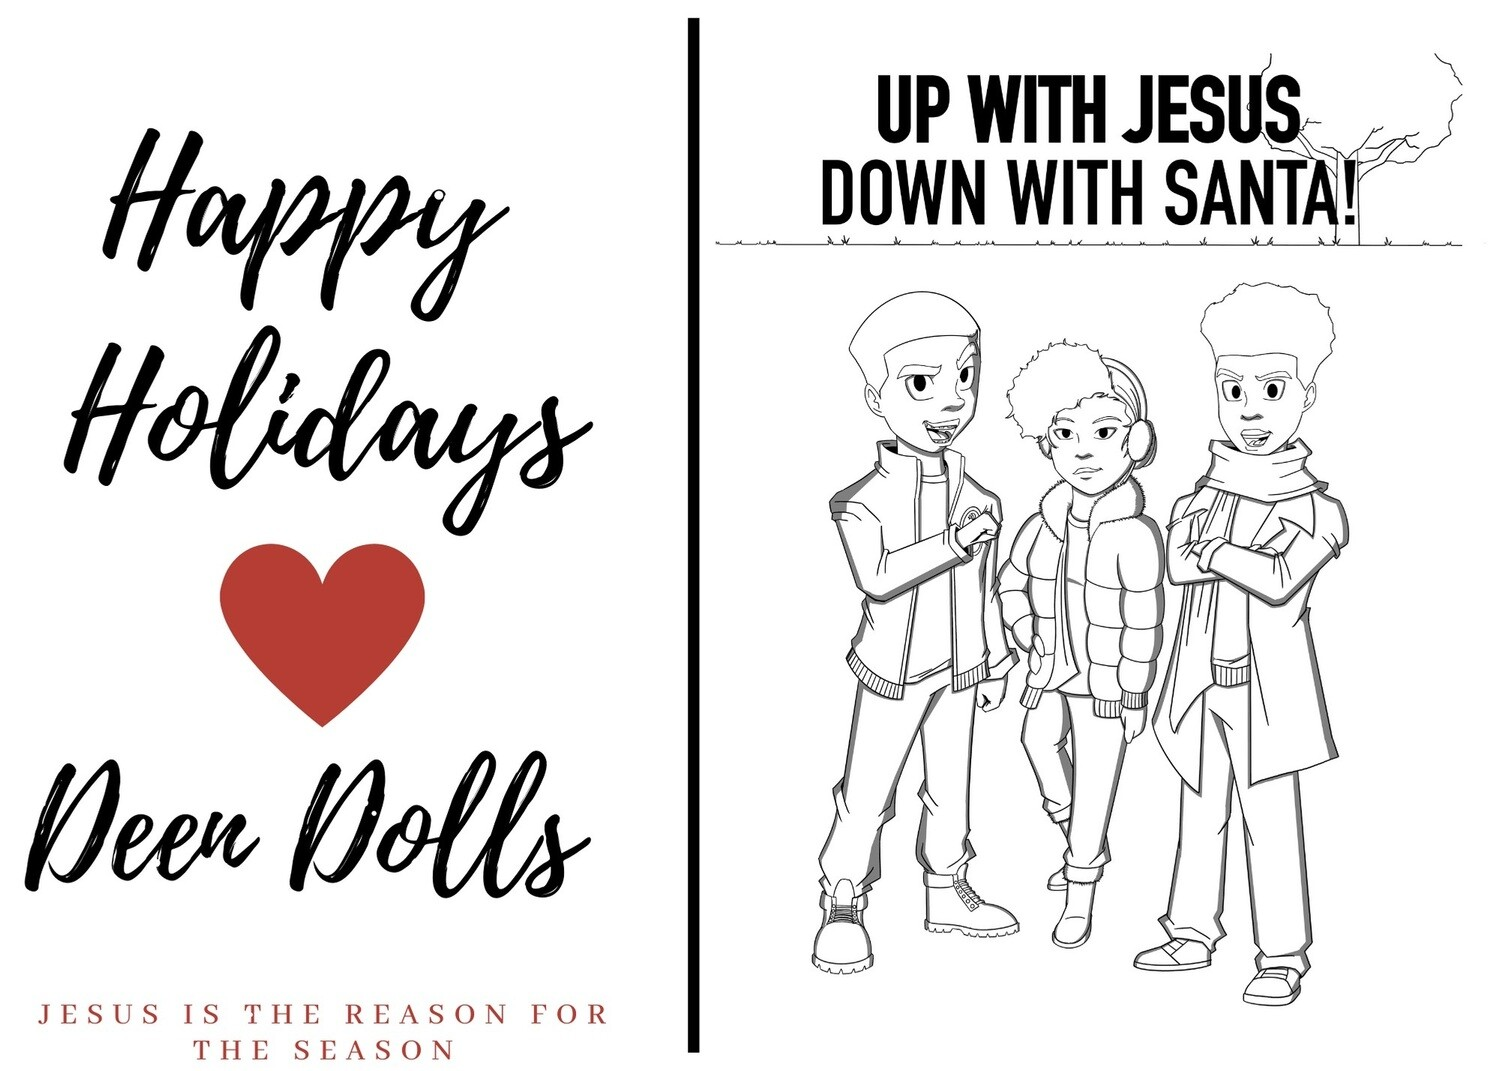 UP WITH JESUS DOWN WITH SANTA COLORING BOOK E-POSTCARDS